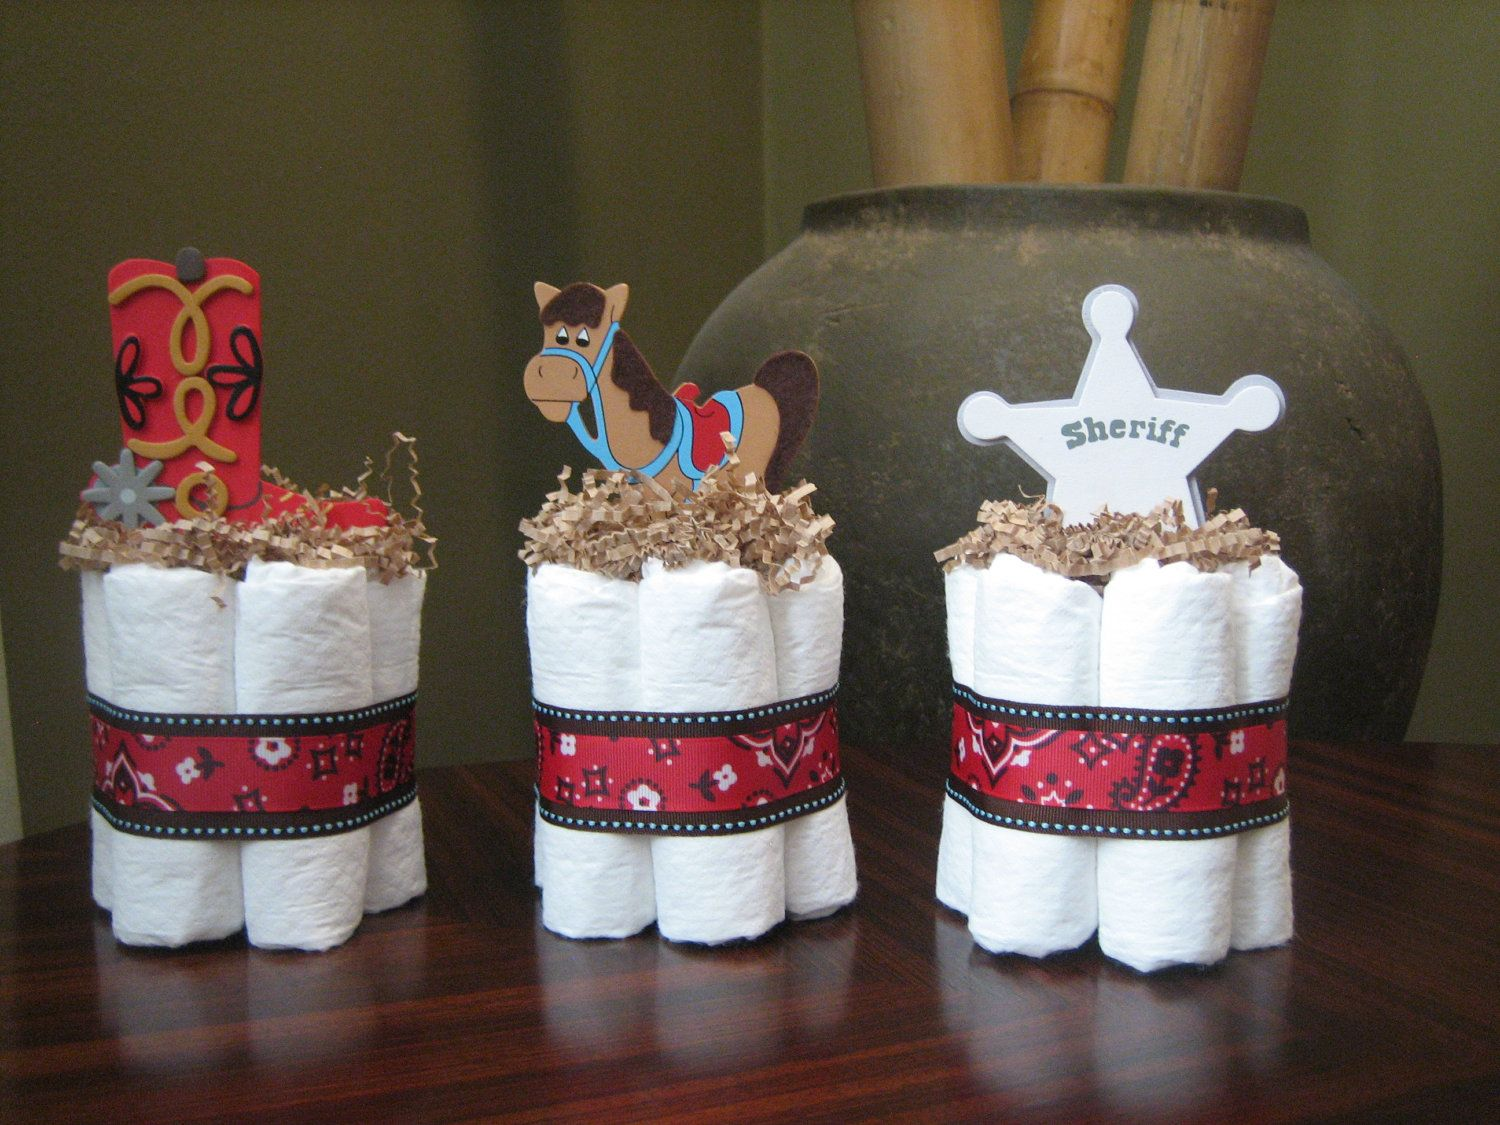 Little Cowboy Mini Diaper Cakes For Baby Shower Decoration Or New Baby Gift Cowboy Diaper Cake L Cowboy Baby Shower Cheap Baby Shower Decorations Baby Cowboy